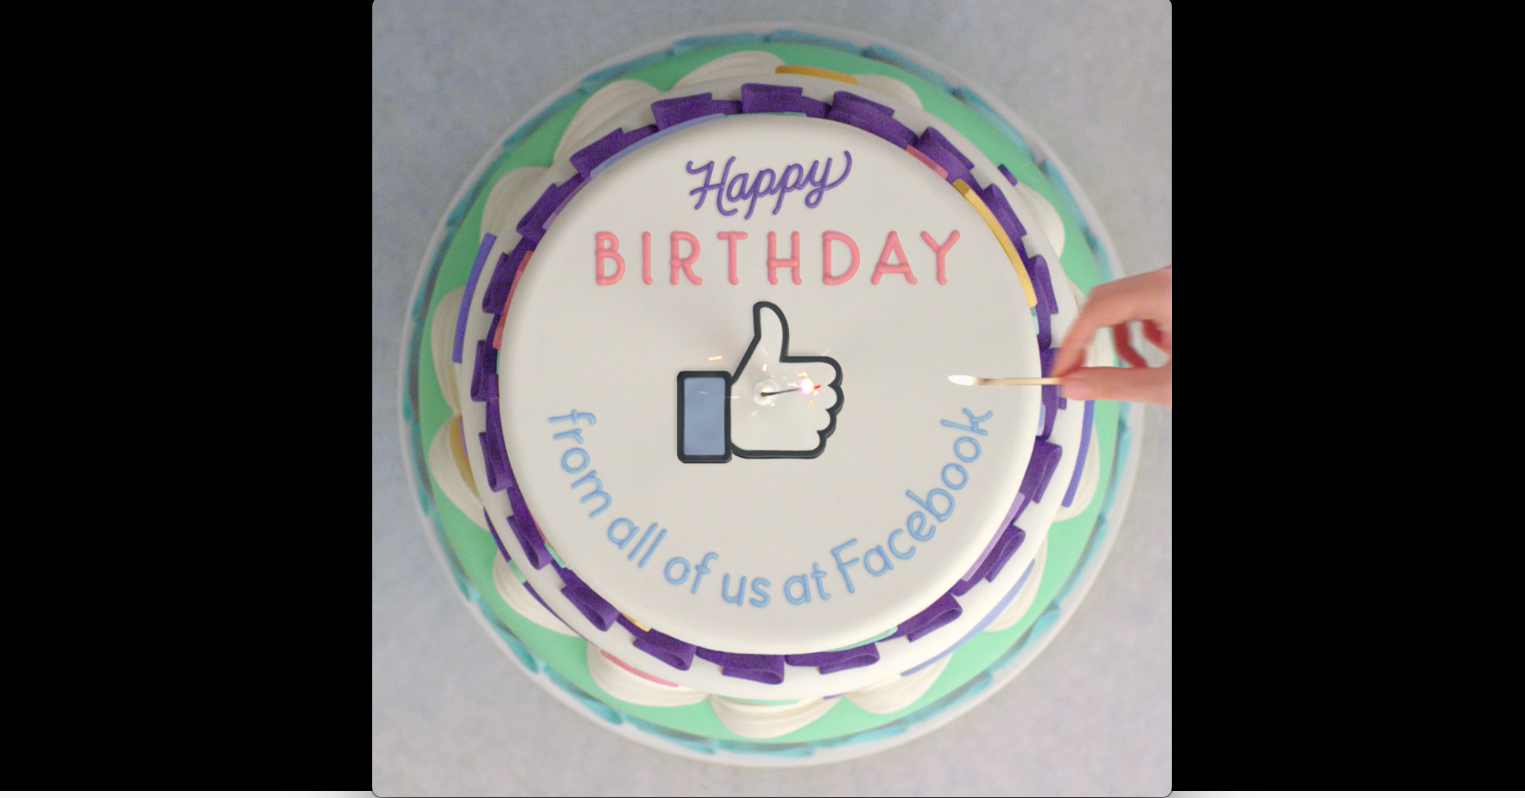 Superb Facebook Tightens Iron Grip On Birthdays With Recap Videos Funny Birthday Cards Online Elaedamsfinfo